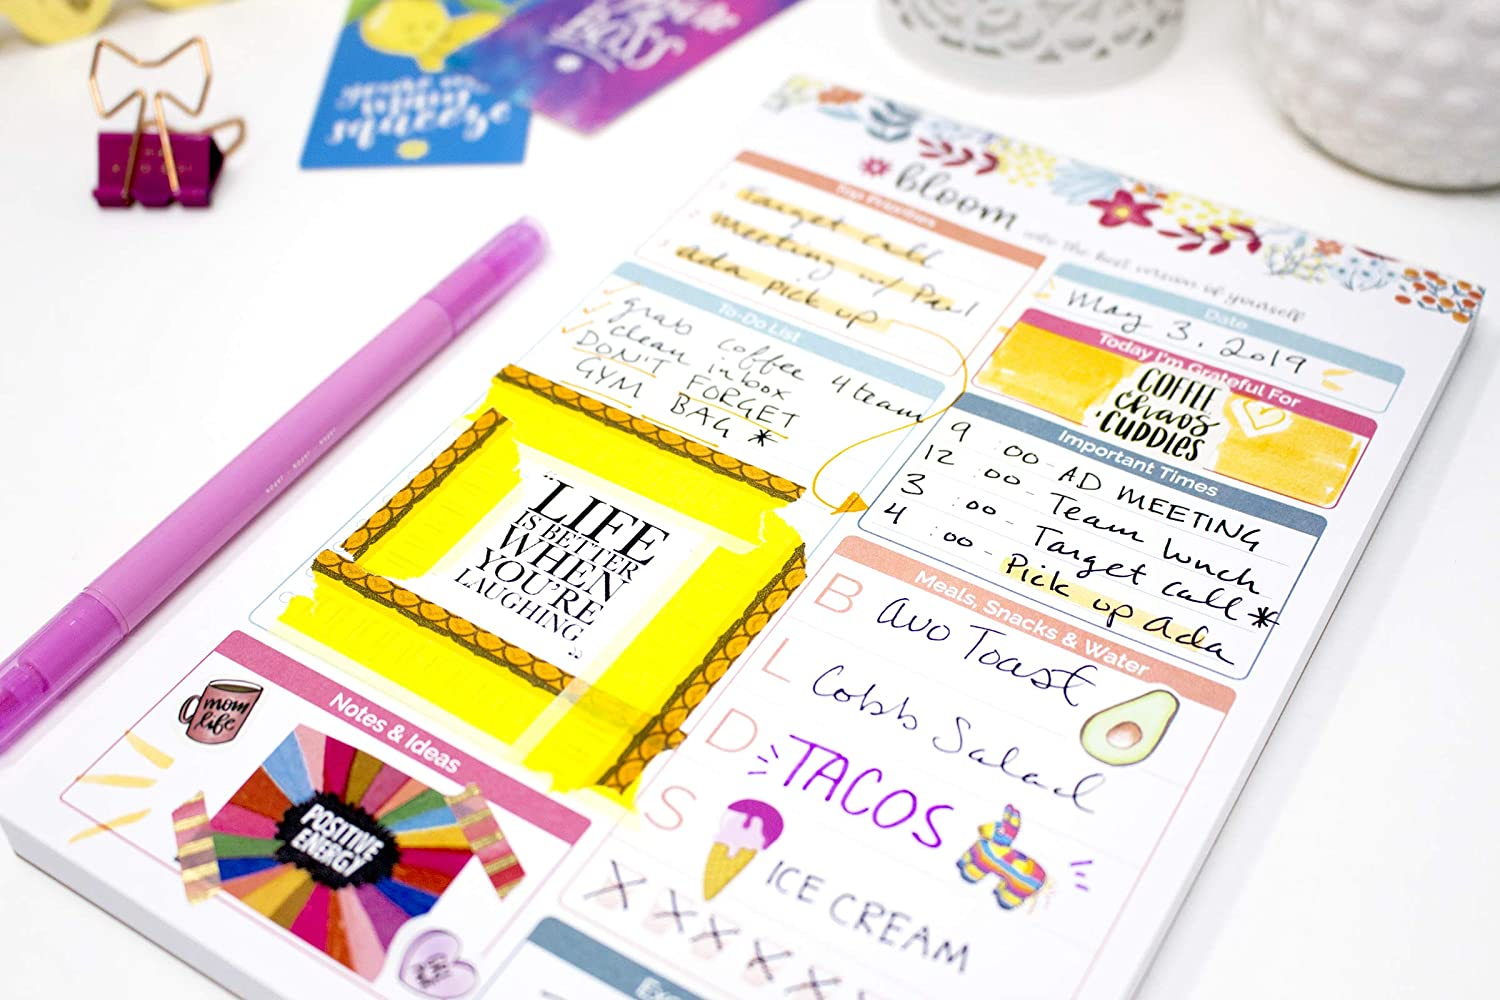 6 x 9 bloom daily planners Weekly Magnetic Meal Planning Pad for Fridge with Tear-Off Grocery Shopping List Lemons Hanging Food//Menu Organizer Notepad with Magnets